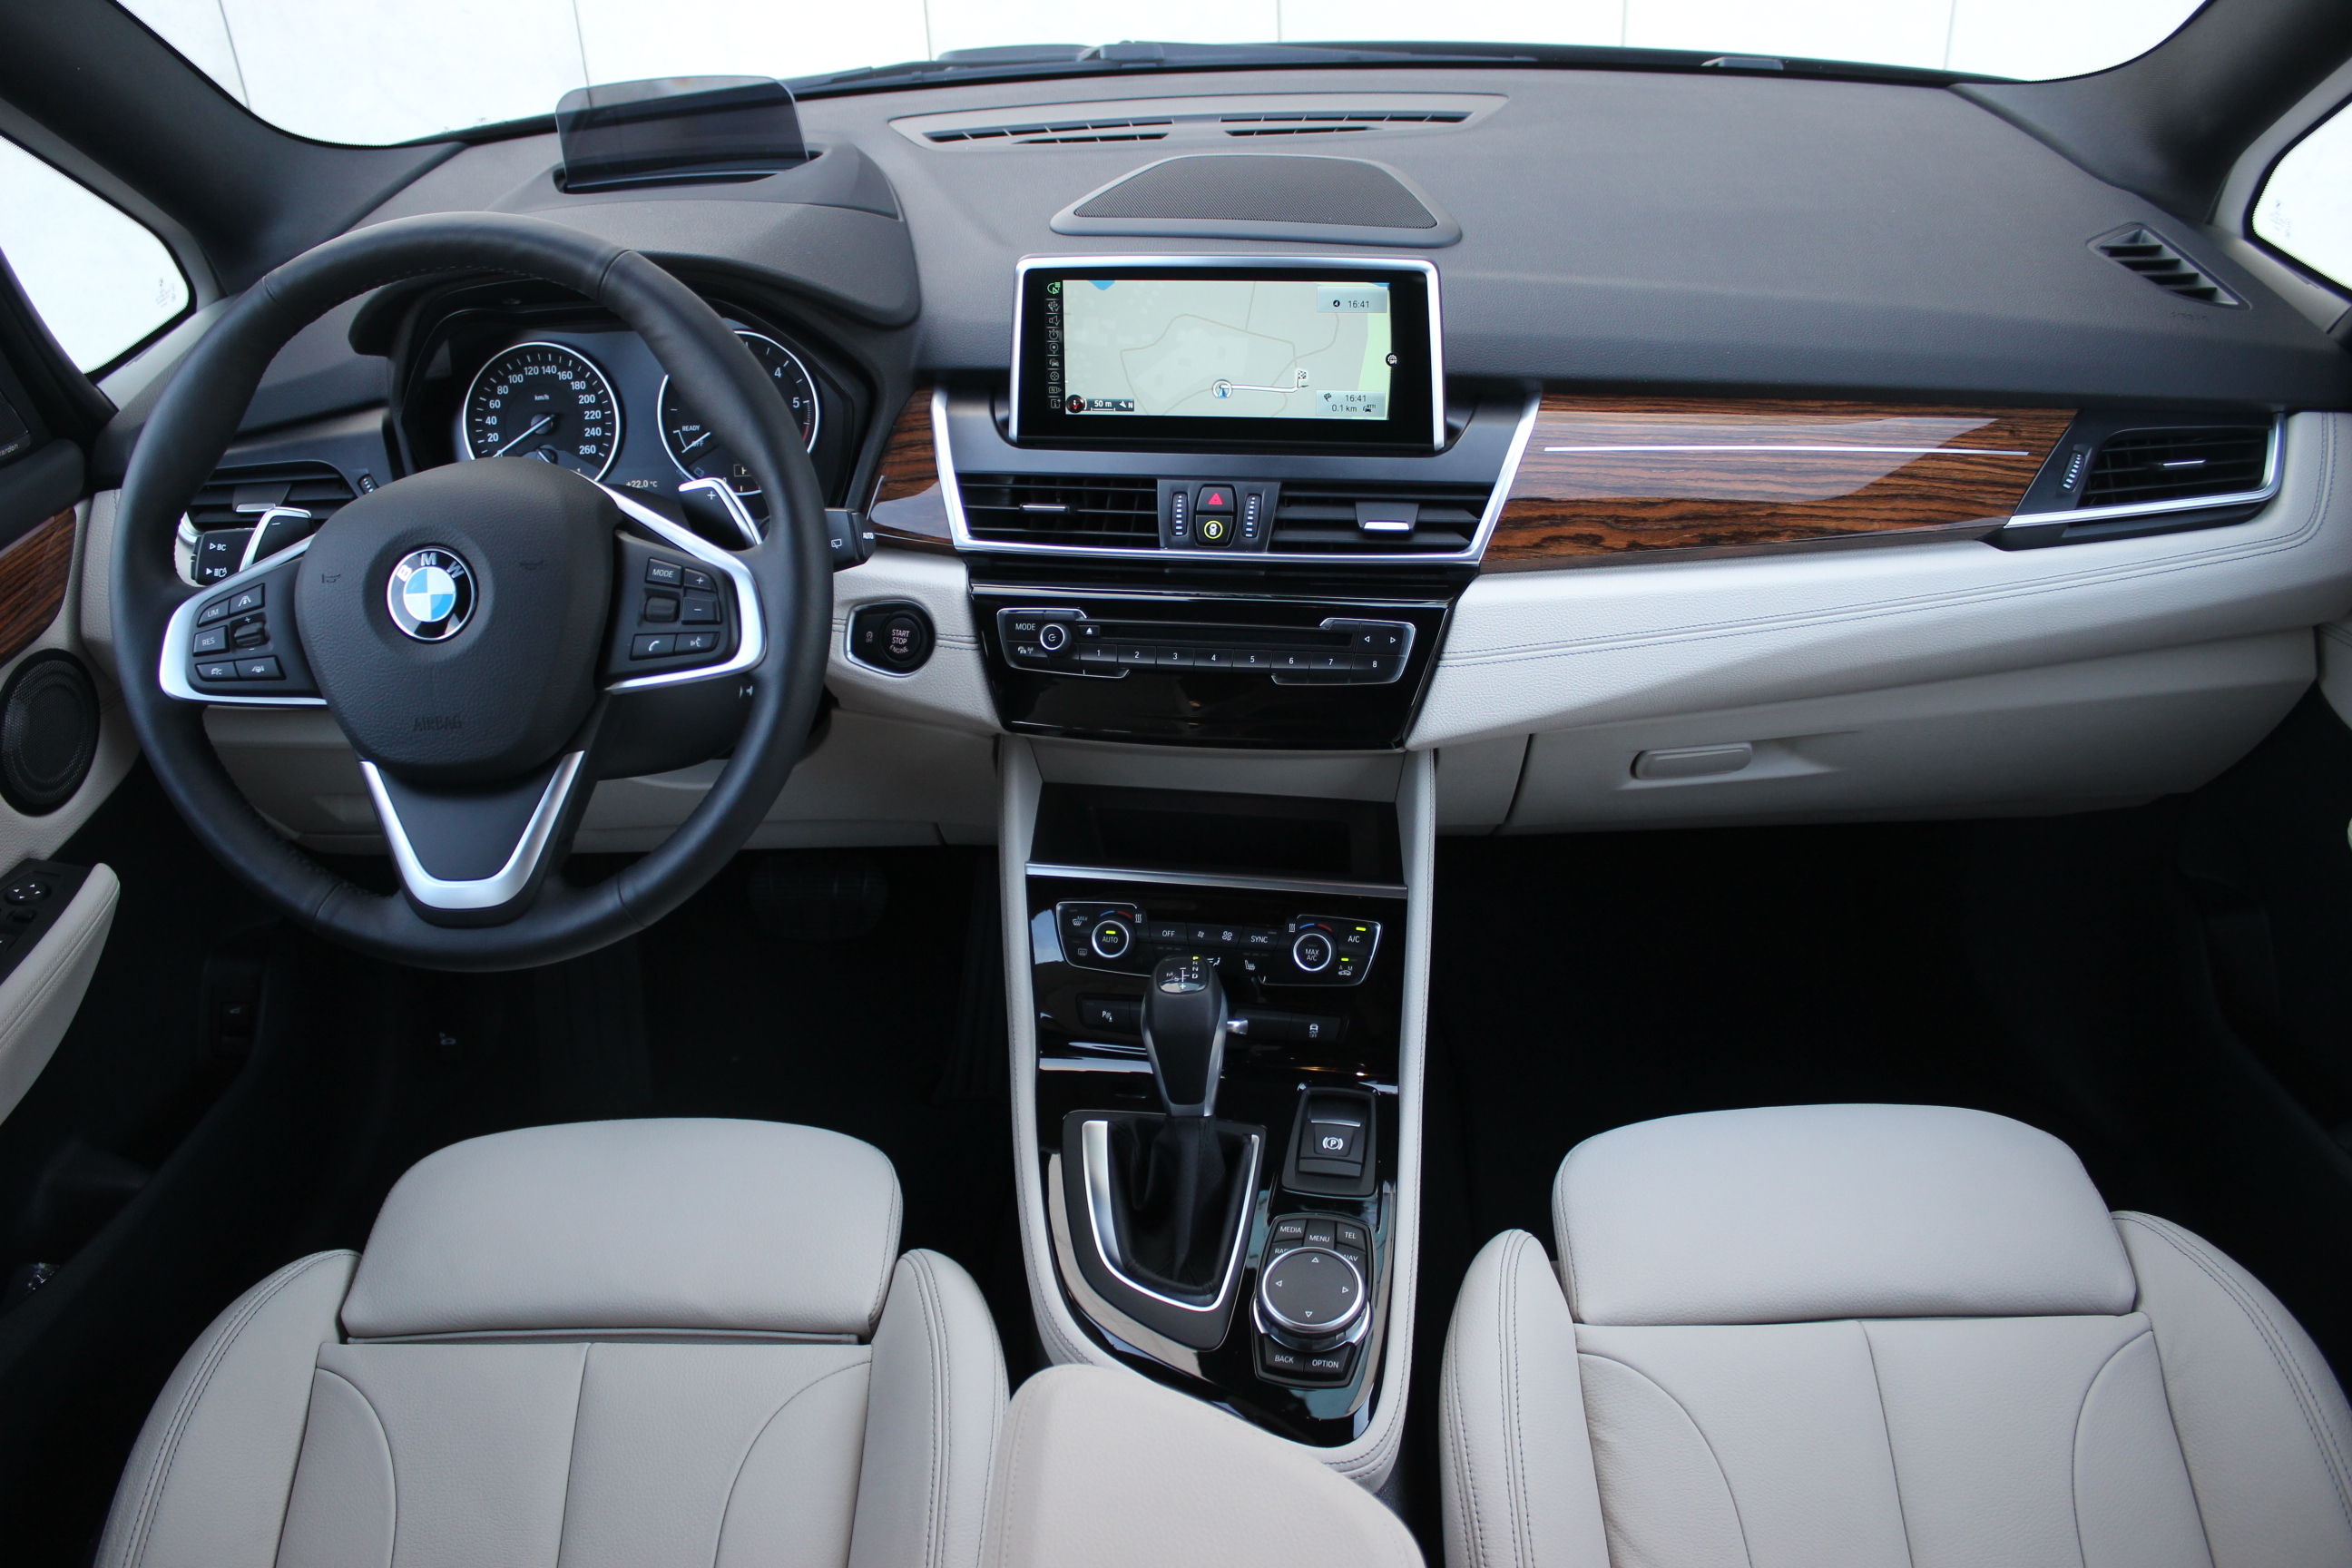 essai vid o bmw s rie 2 gran tourer sept places en. Black Bedroom Furniture Sets. Home Design Ideas